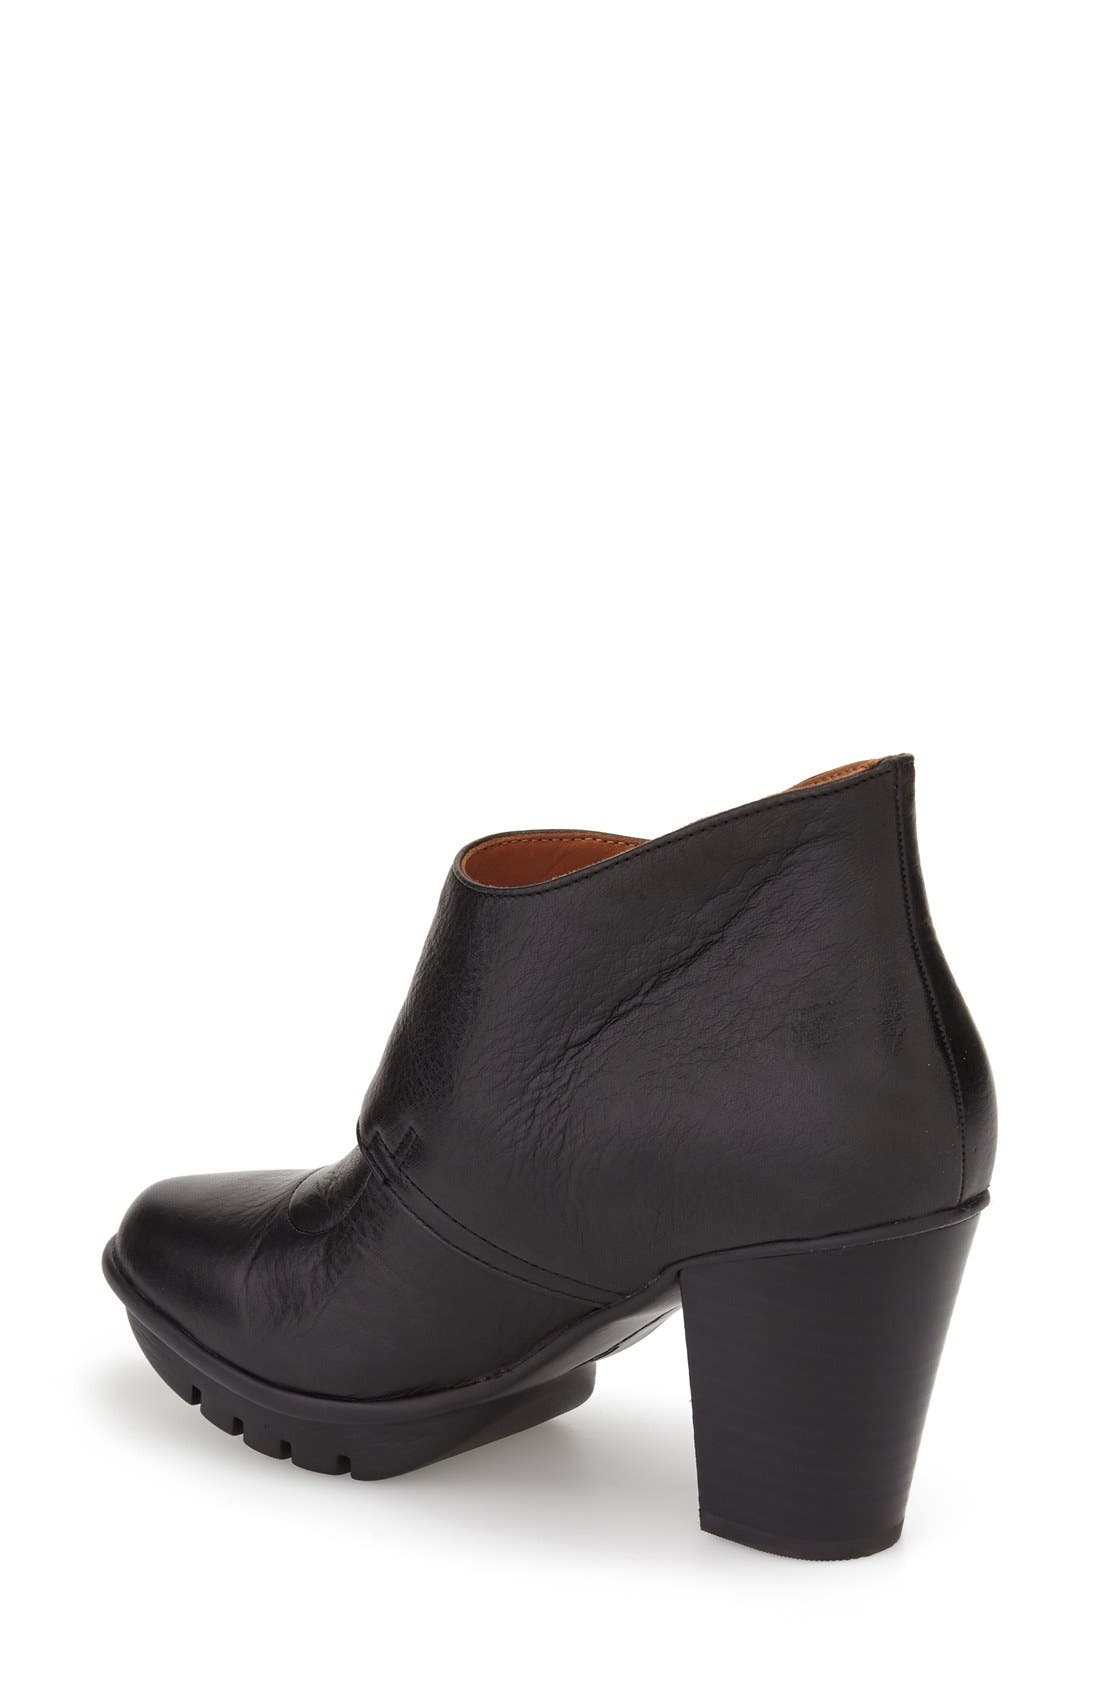 L'AMOUR DES PIEDS,                             'Eviemae' Platform Bootie,                             Alternate thumbnail 3, color,                             001